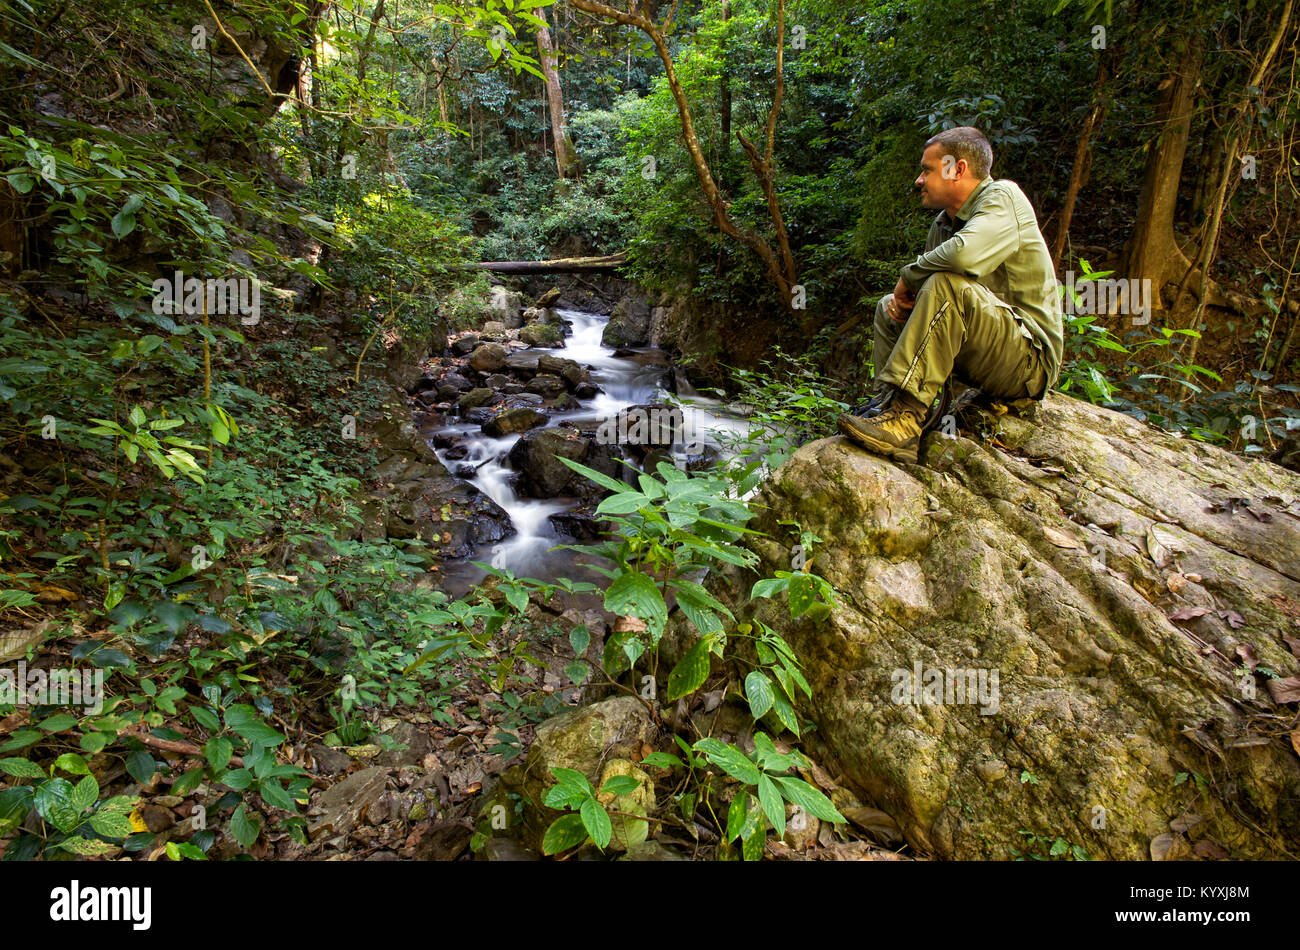 Hiker in the jungles of Thailand. - Stock Image